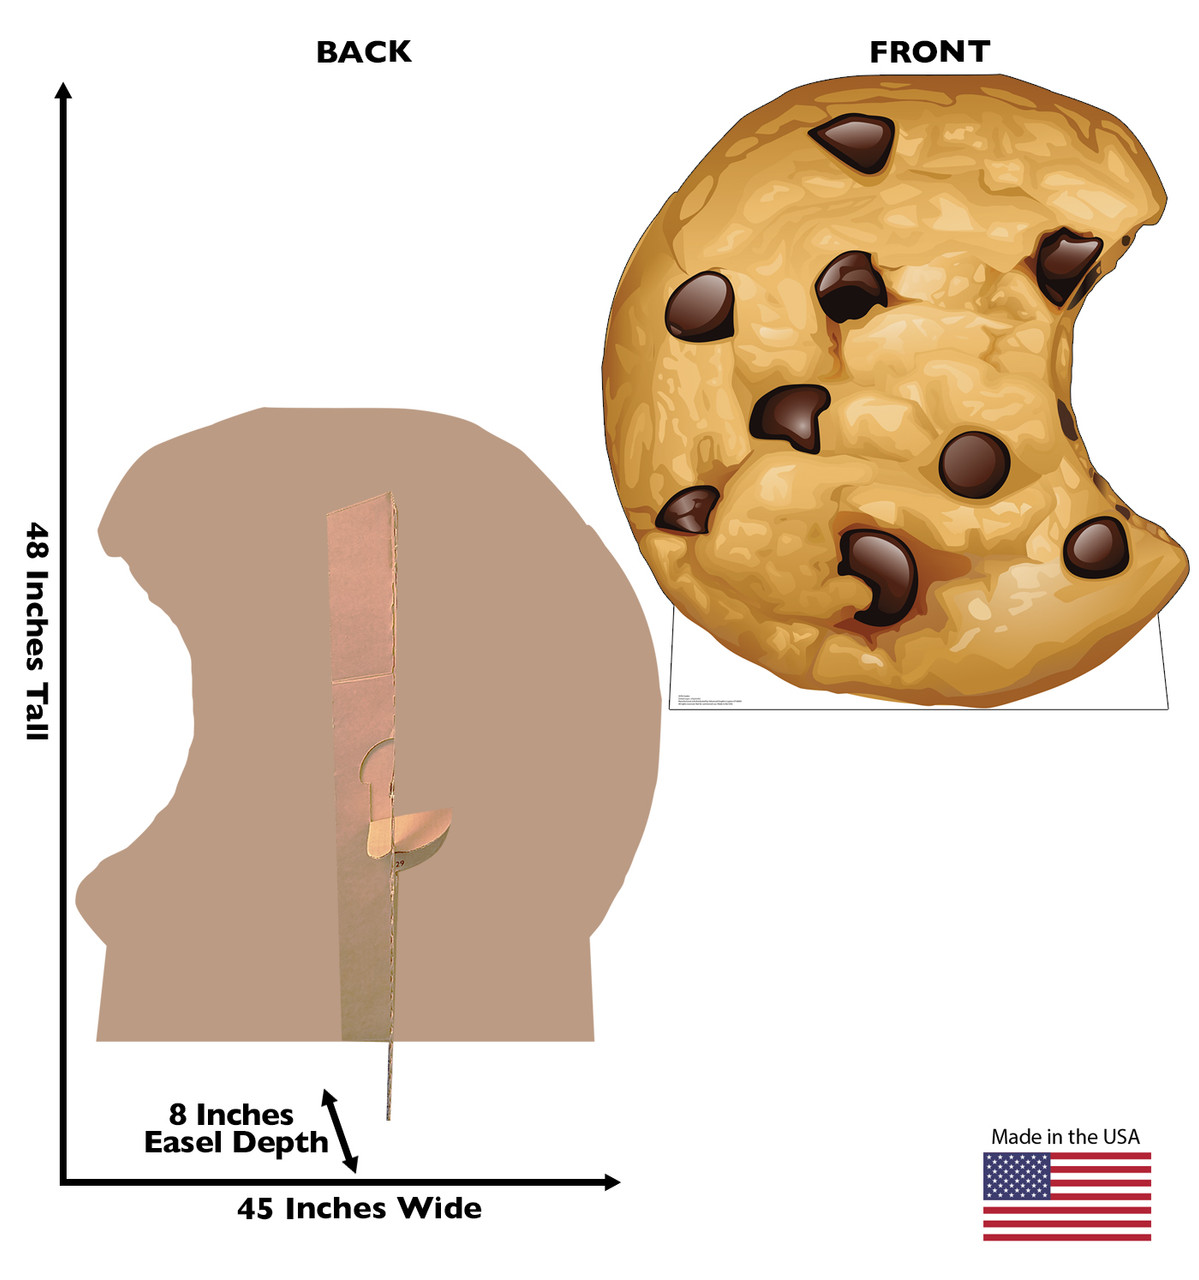 Life-size cardboard standee of a Chocolate Chip Cookie with back and front dimensions.